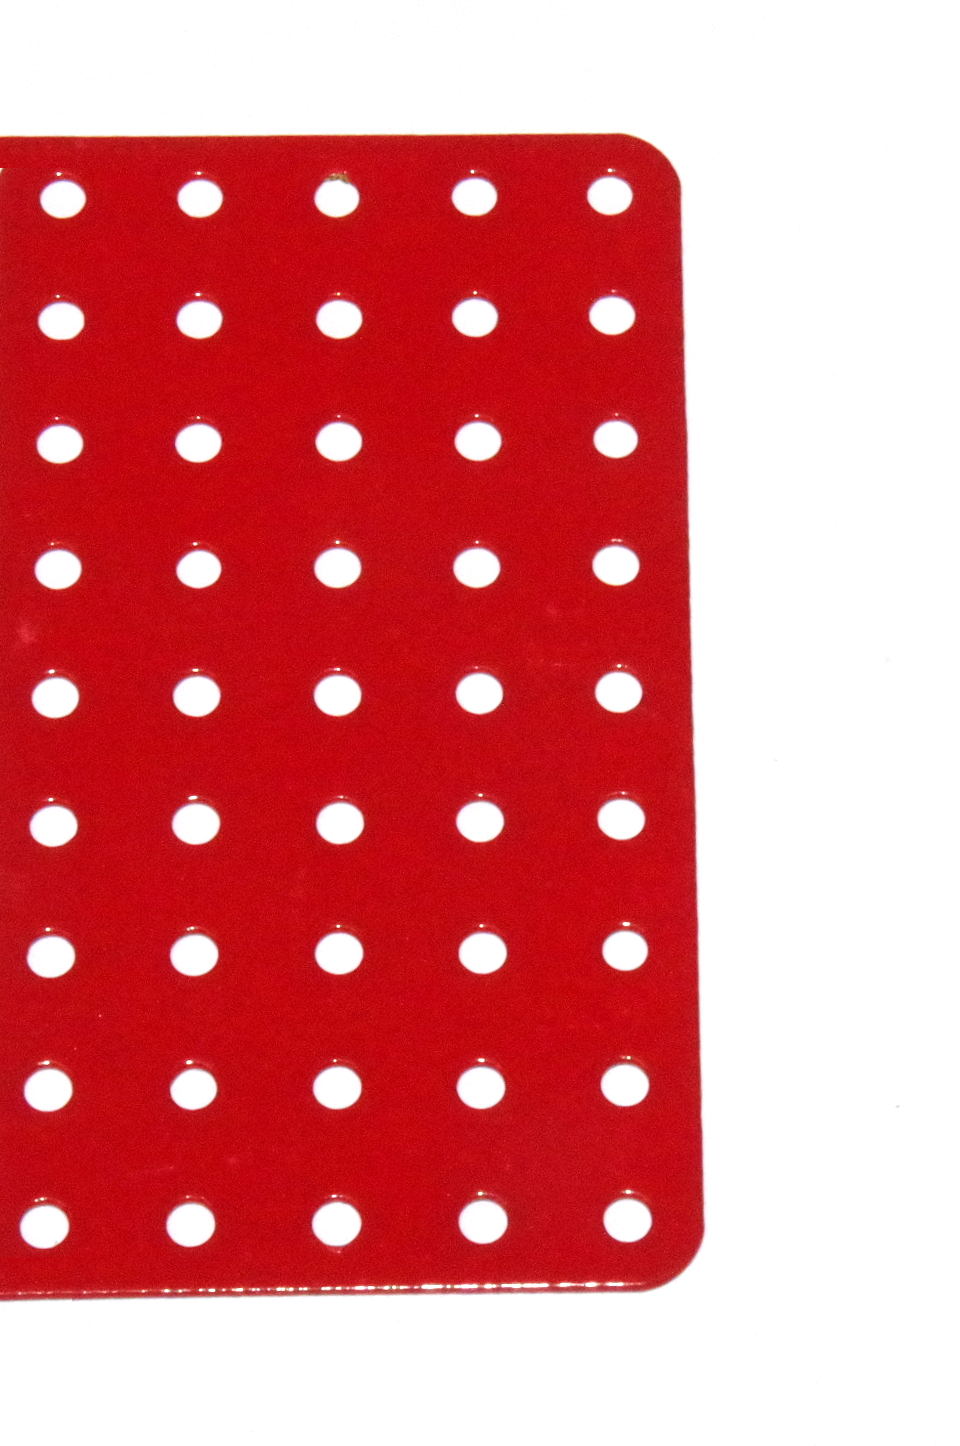 71c Flat Plate 9x19 Hole Red